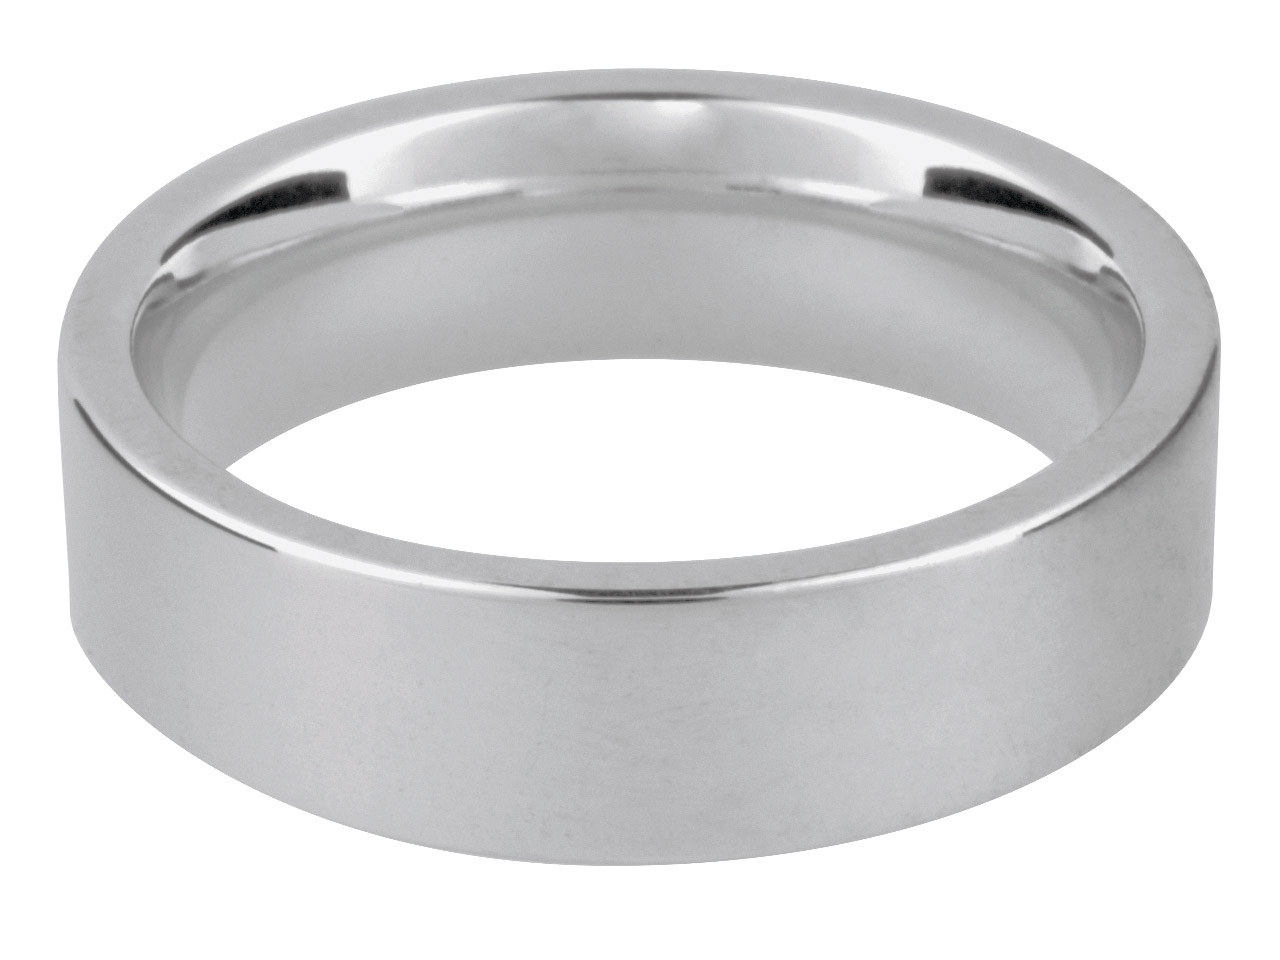 18ct White Easy Fit Wedding Ring   5.0mm U 8.6gms Medium Weight       Hallmarked Wall Thickness 1.72mm